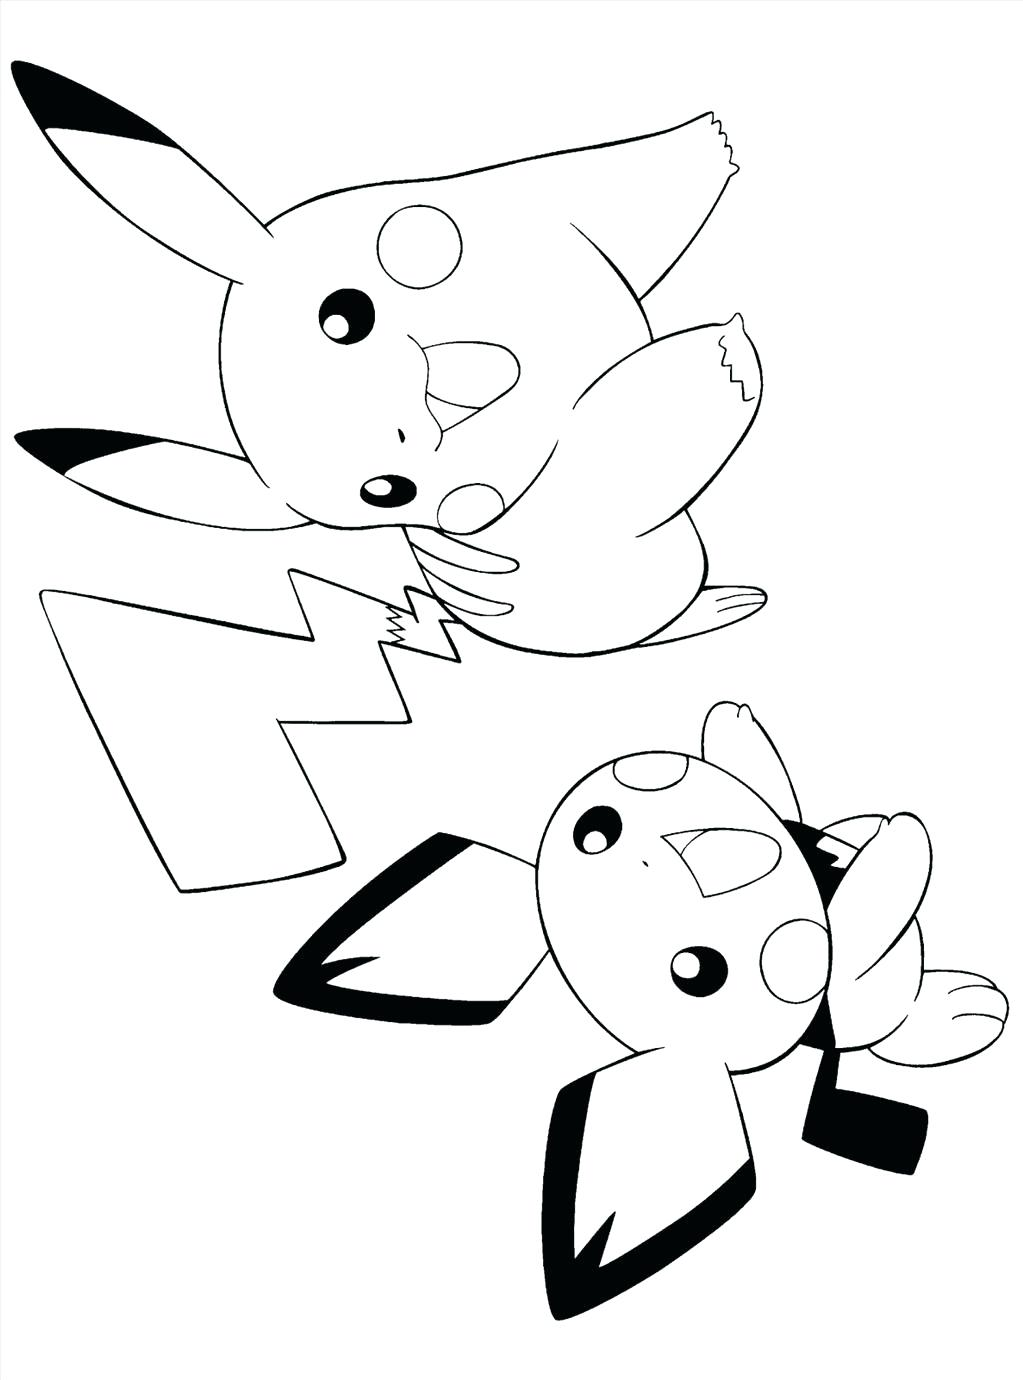 Baby Pikachu Drawing At Getdrawings Free For Personal Use Baby